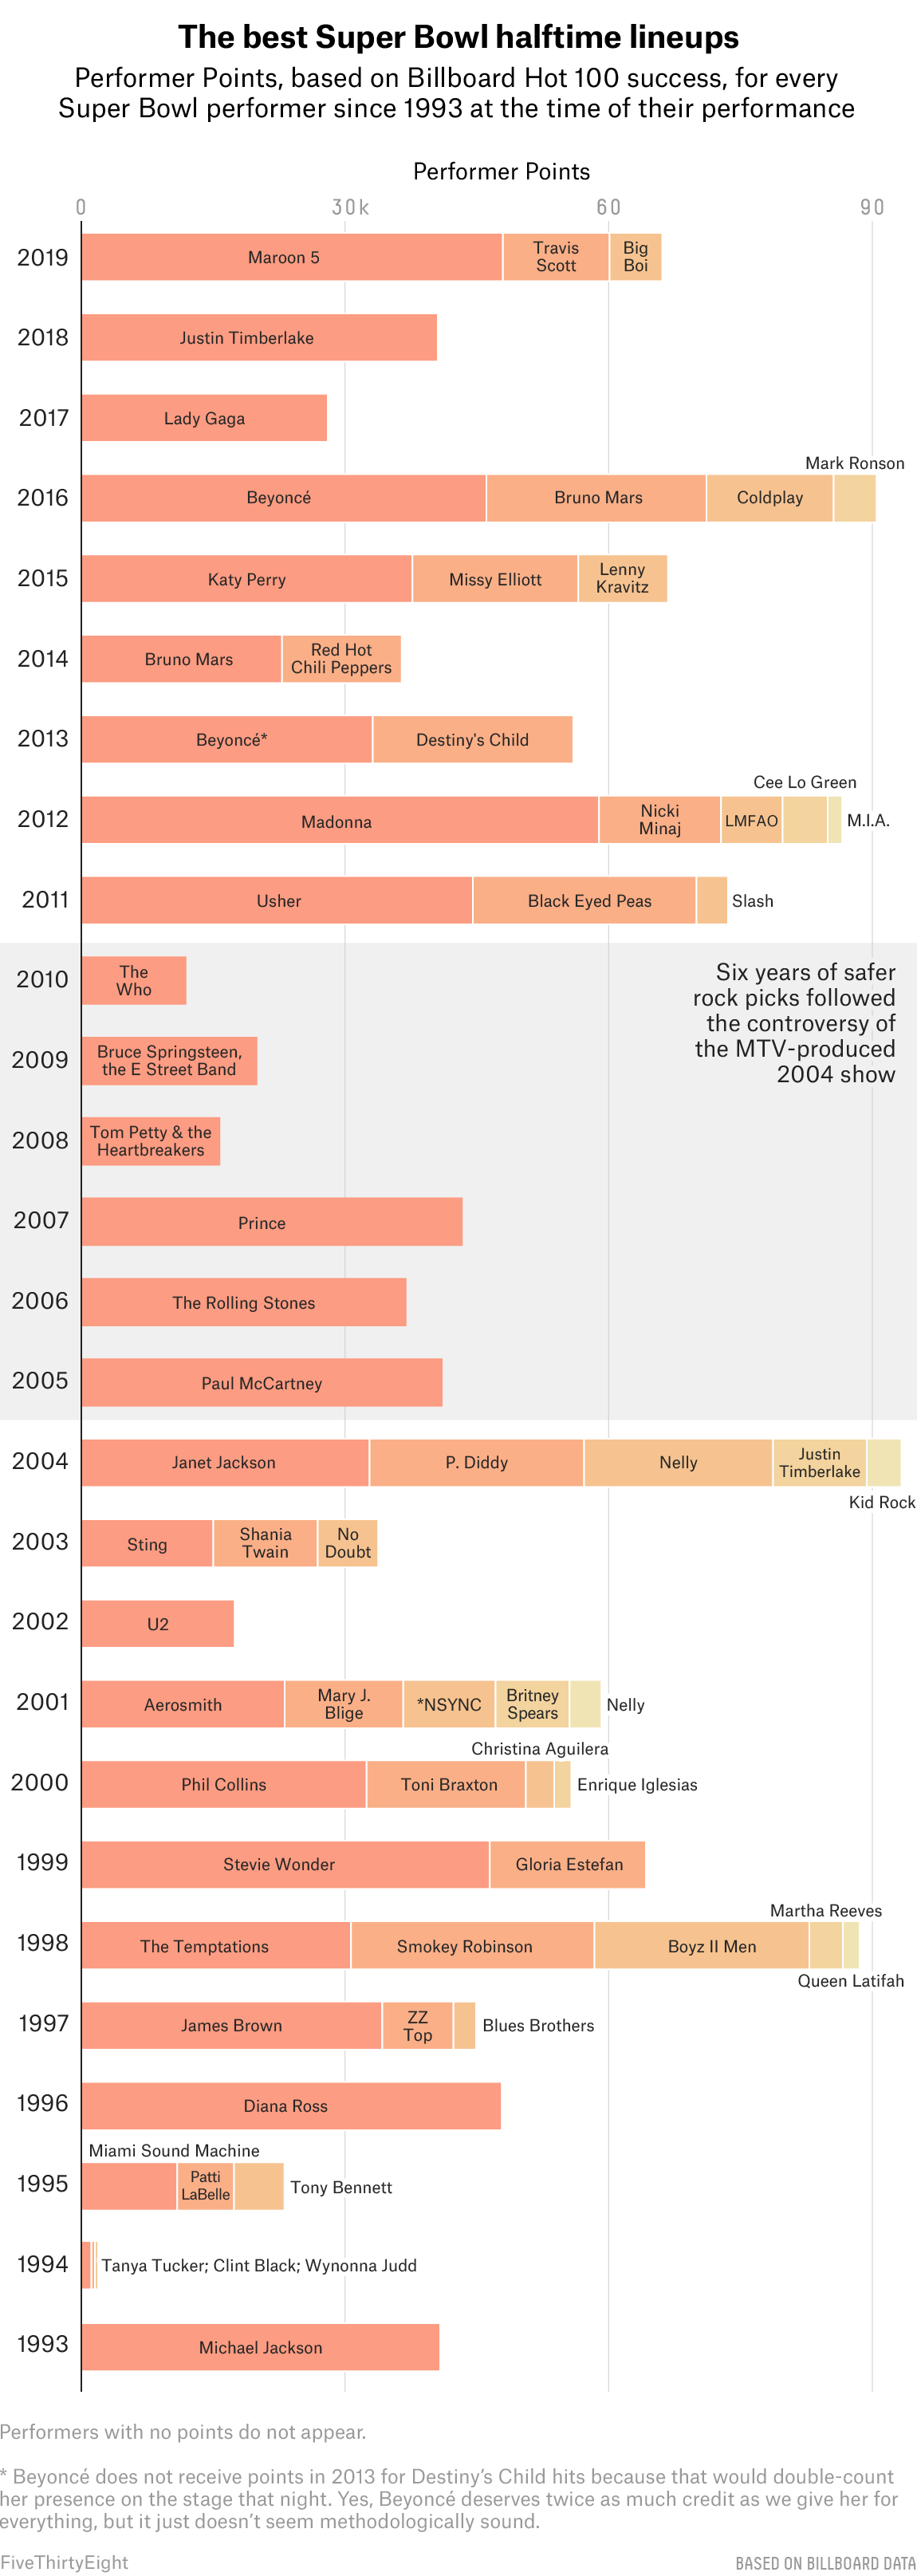 Super Bowl Pregame Show 2020.25 Years Of Super Bowl Halftime Show Lineups Ranked